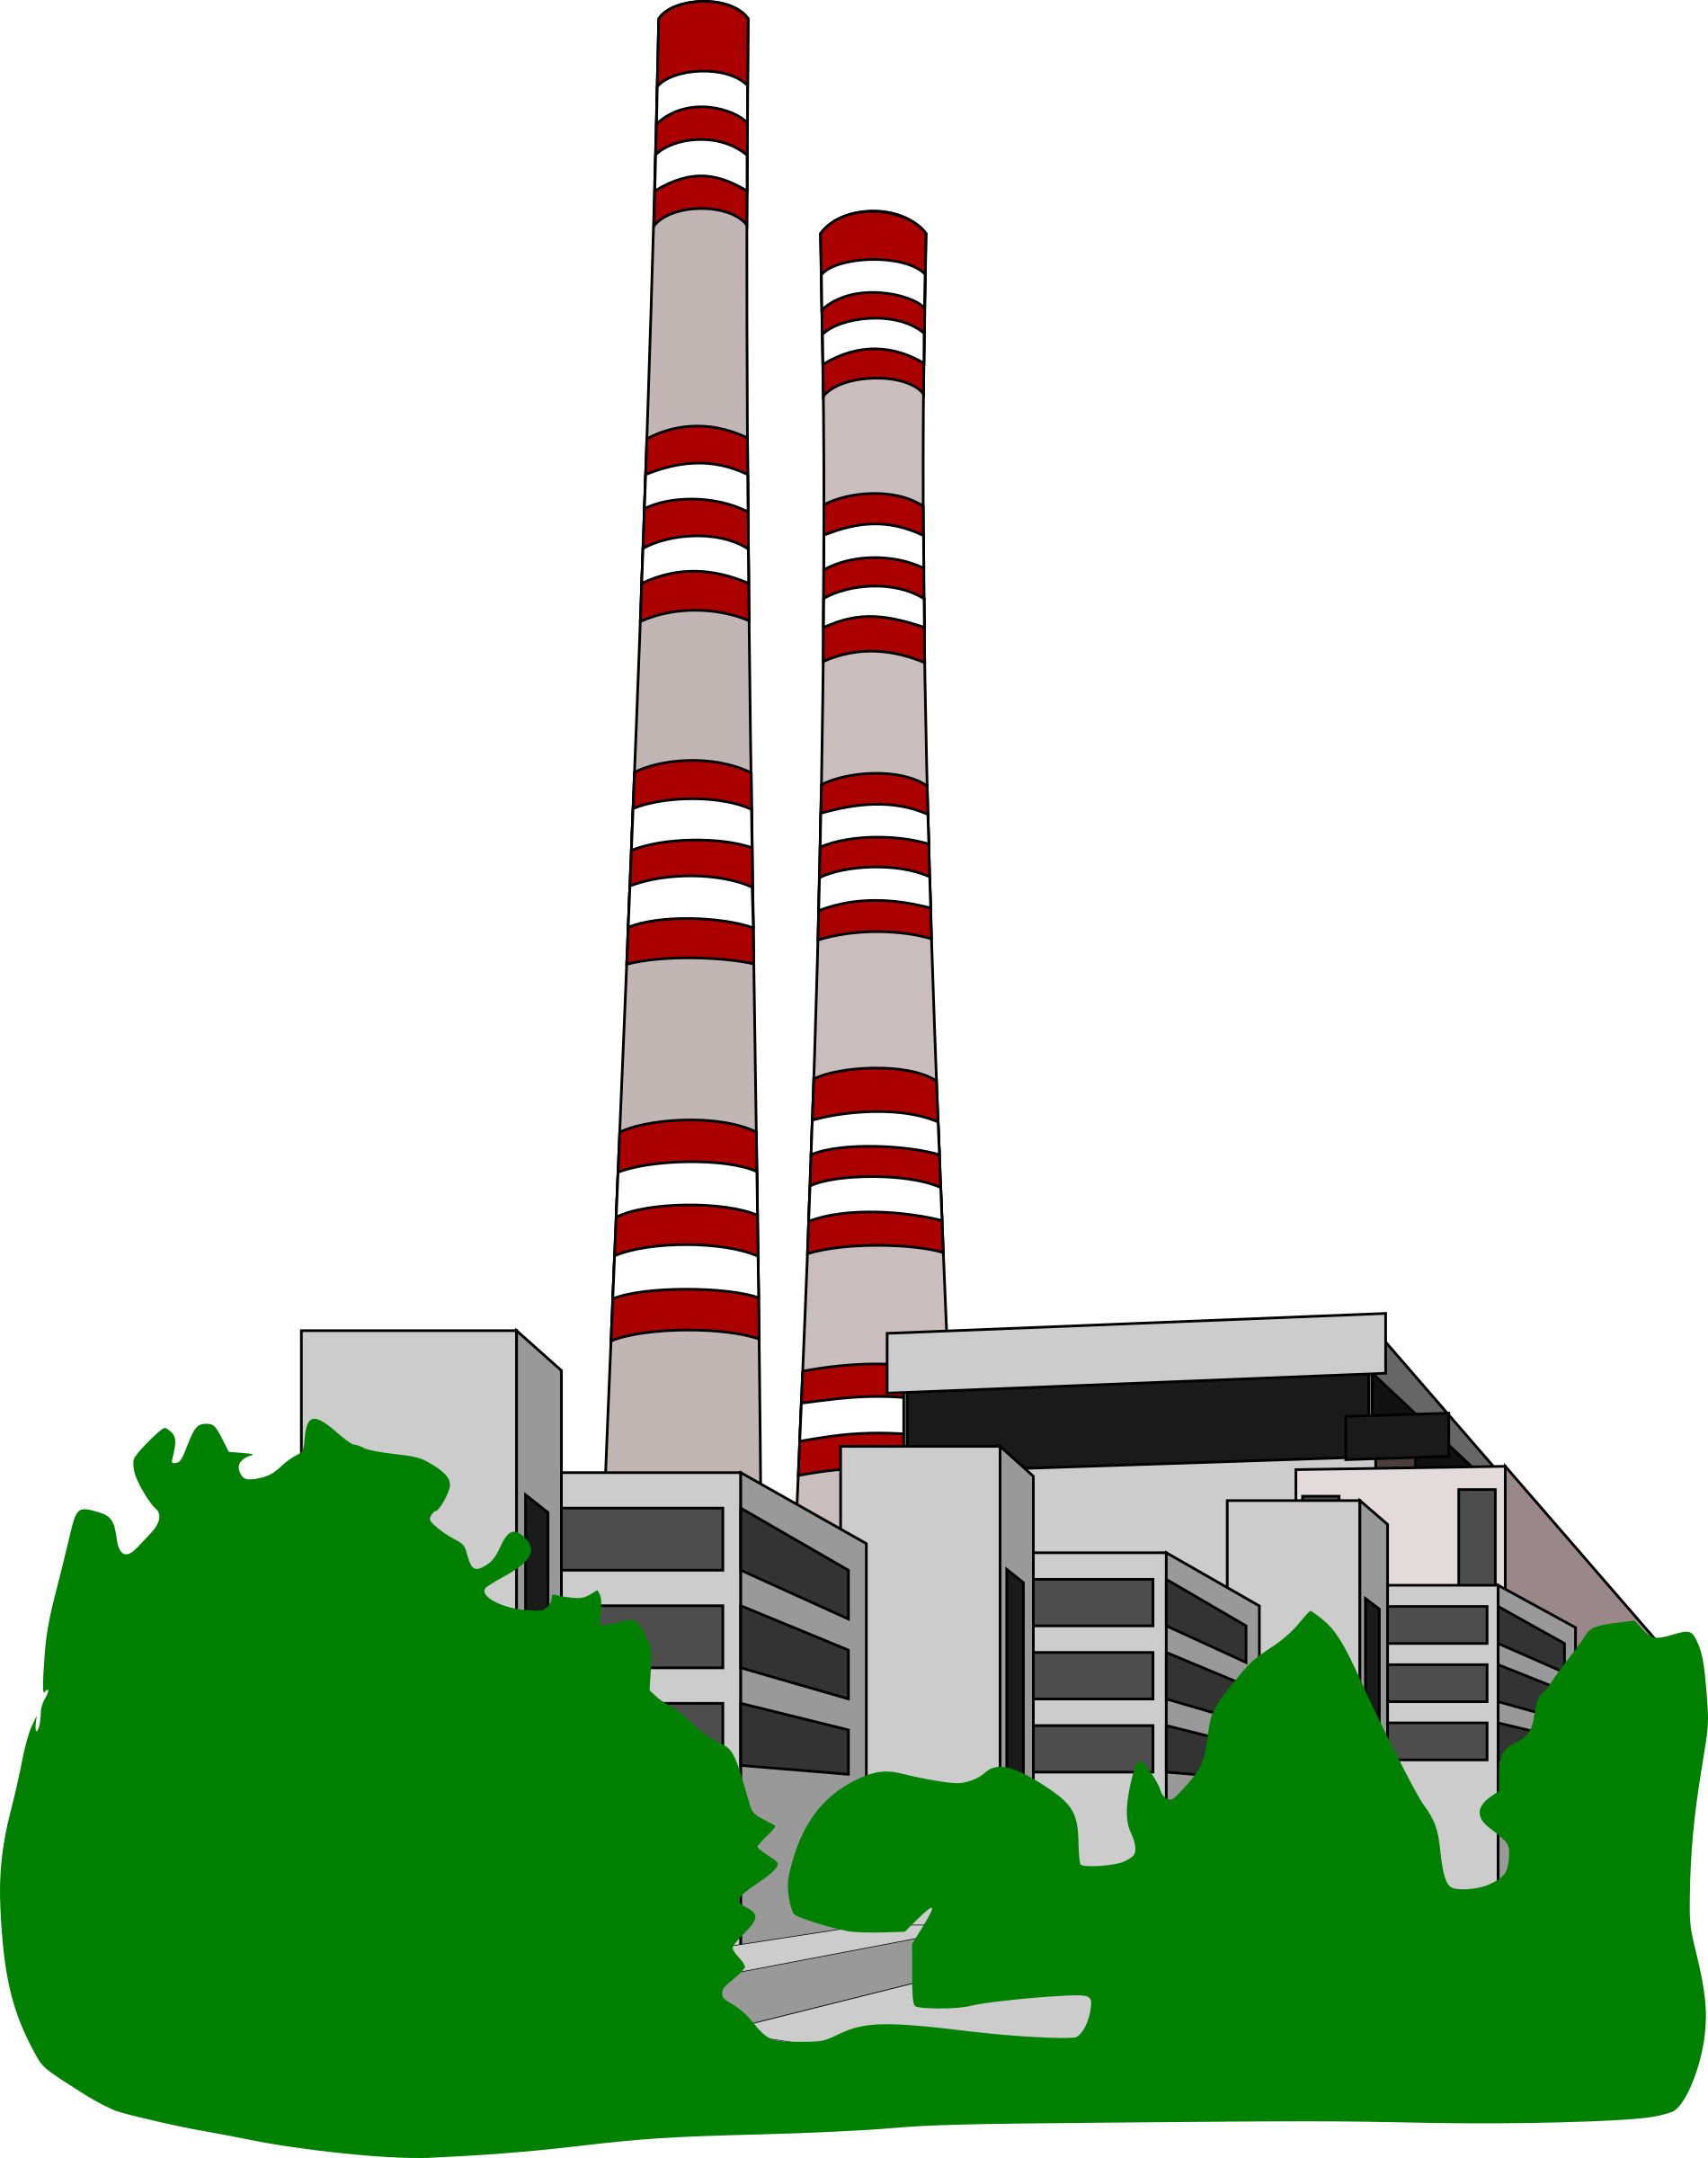 Electric clipart electricity generation.  collection of power